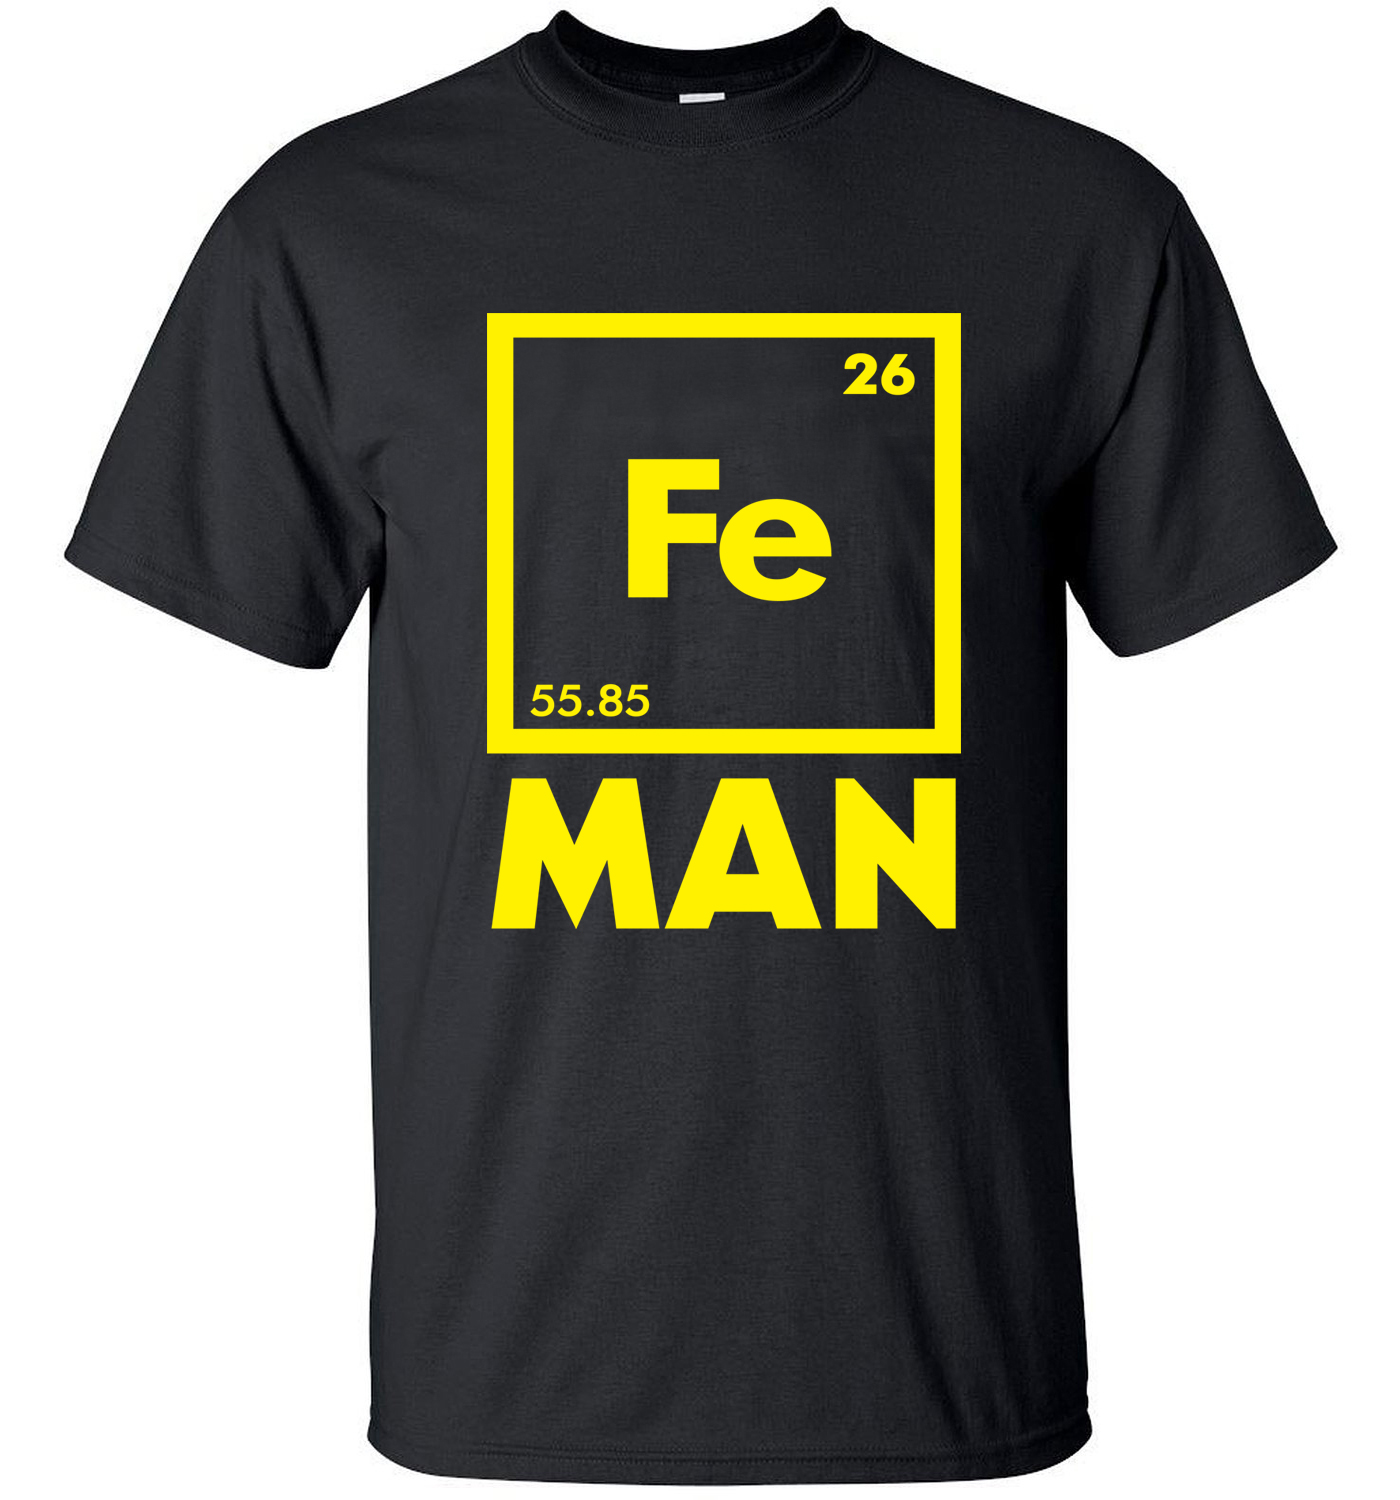 adult men t-shirts 2019 new style summer Fe Iron science shirt 100% cotton high quality short sleeve o-neck chemical tee shirts